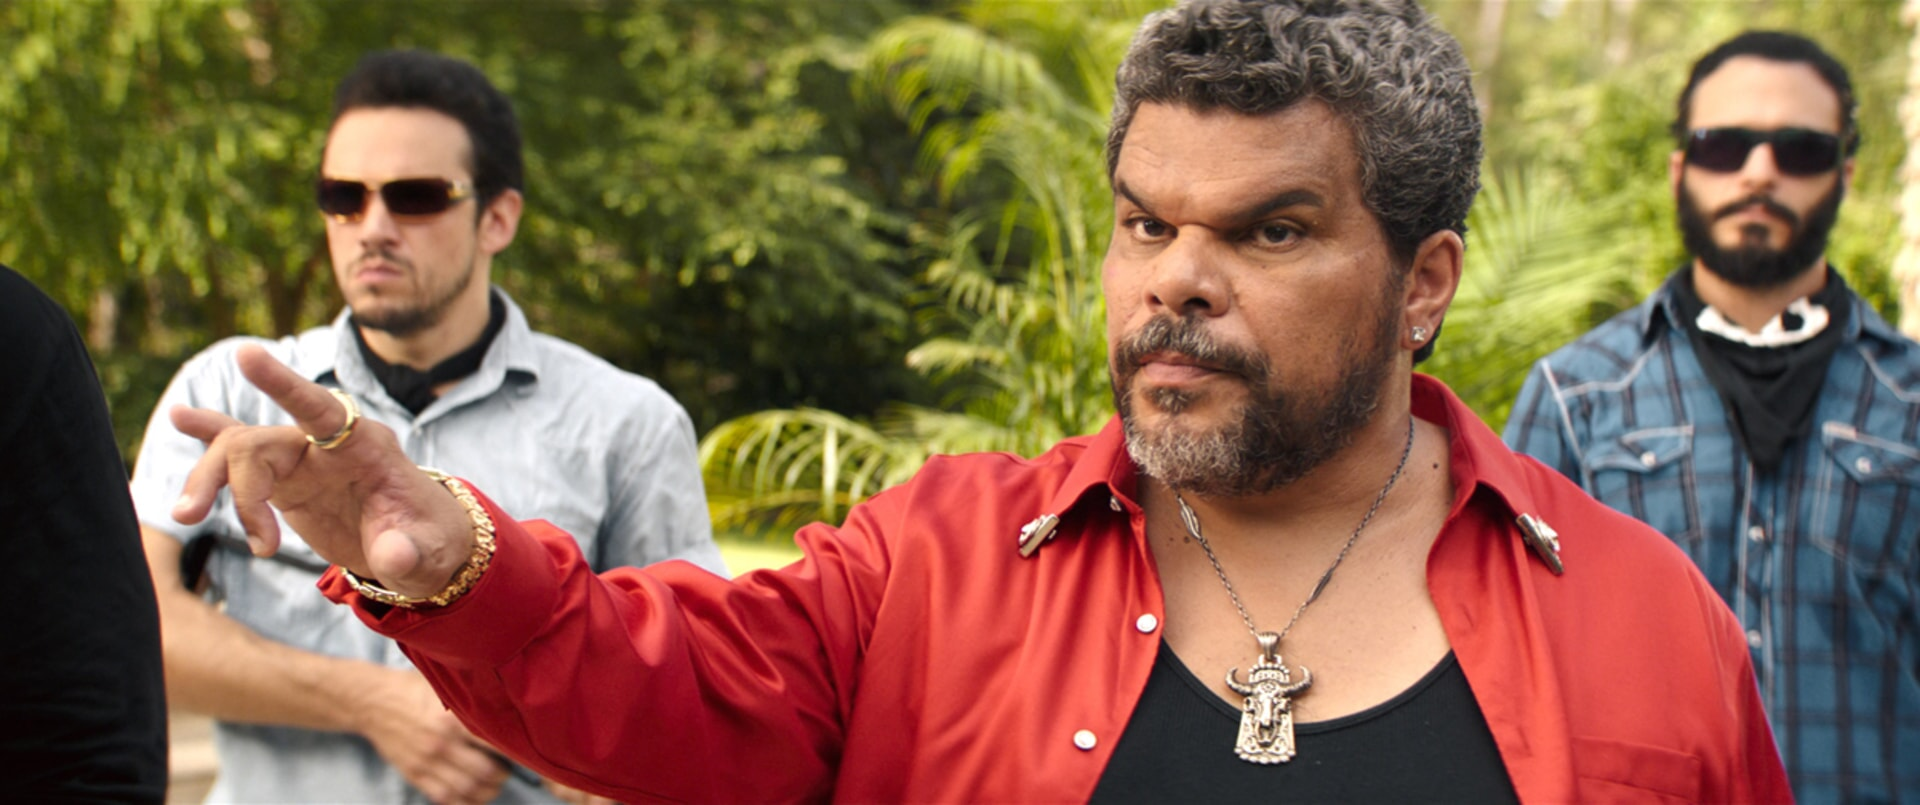 LUIS GUZMÁN as Bacon wearing a red jacket and amulet necklace